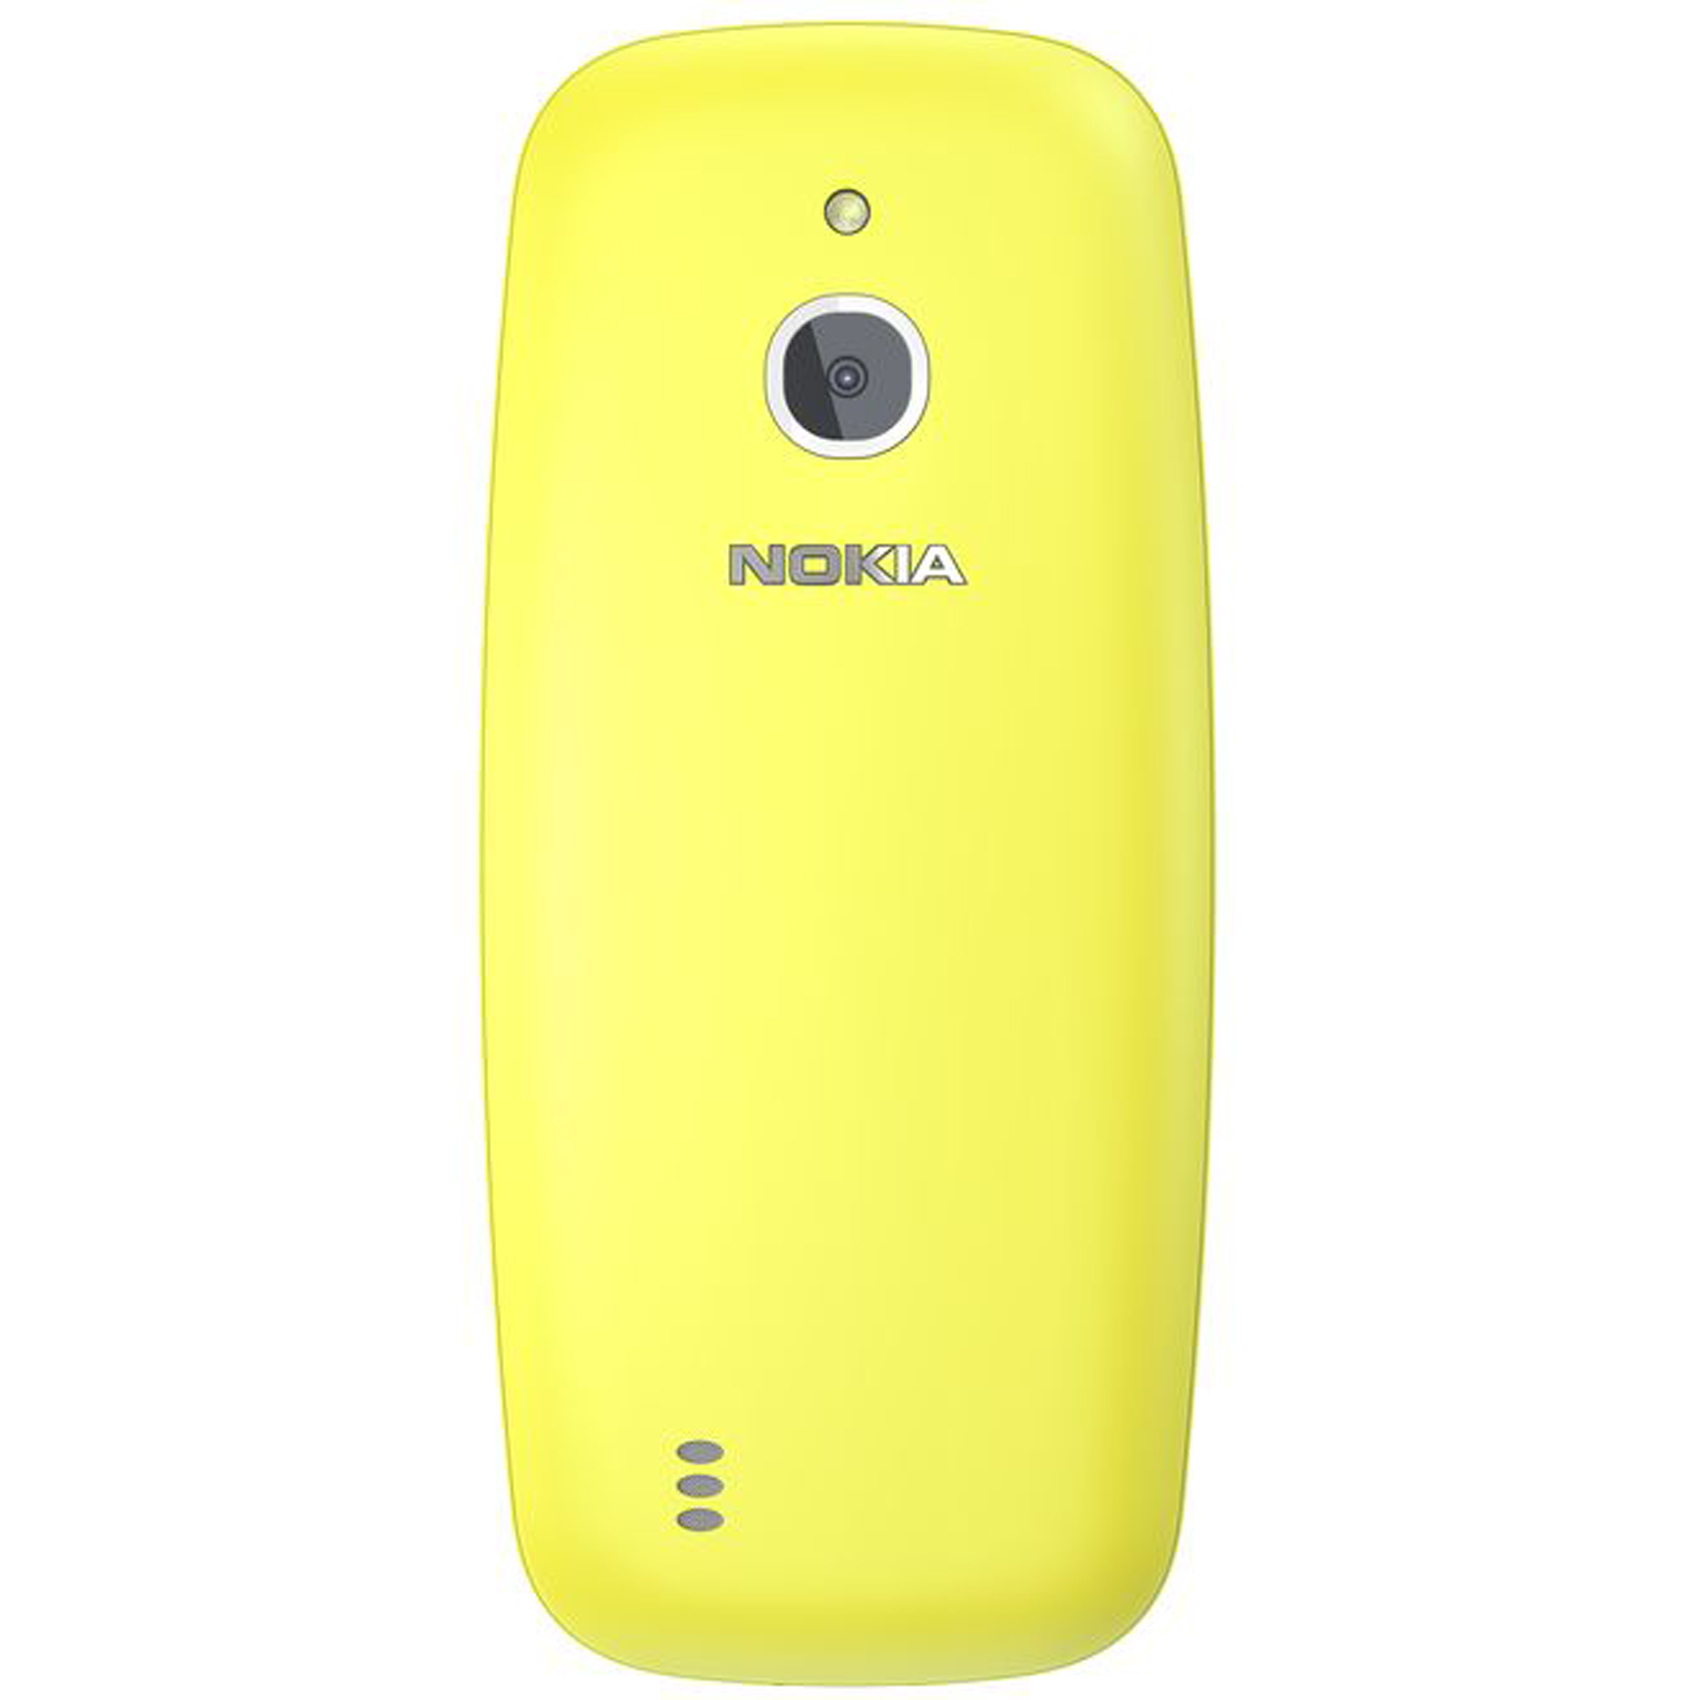 Buy Nokia Mobile 3310 Dual Sim 3g Yellow Online Shop On Circuit Board From A Phone Stock Photo Picture And Ds